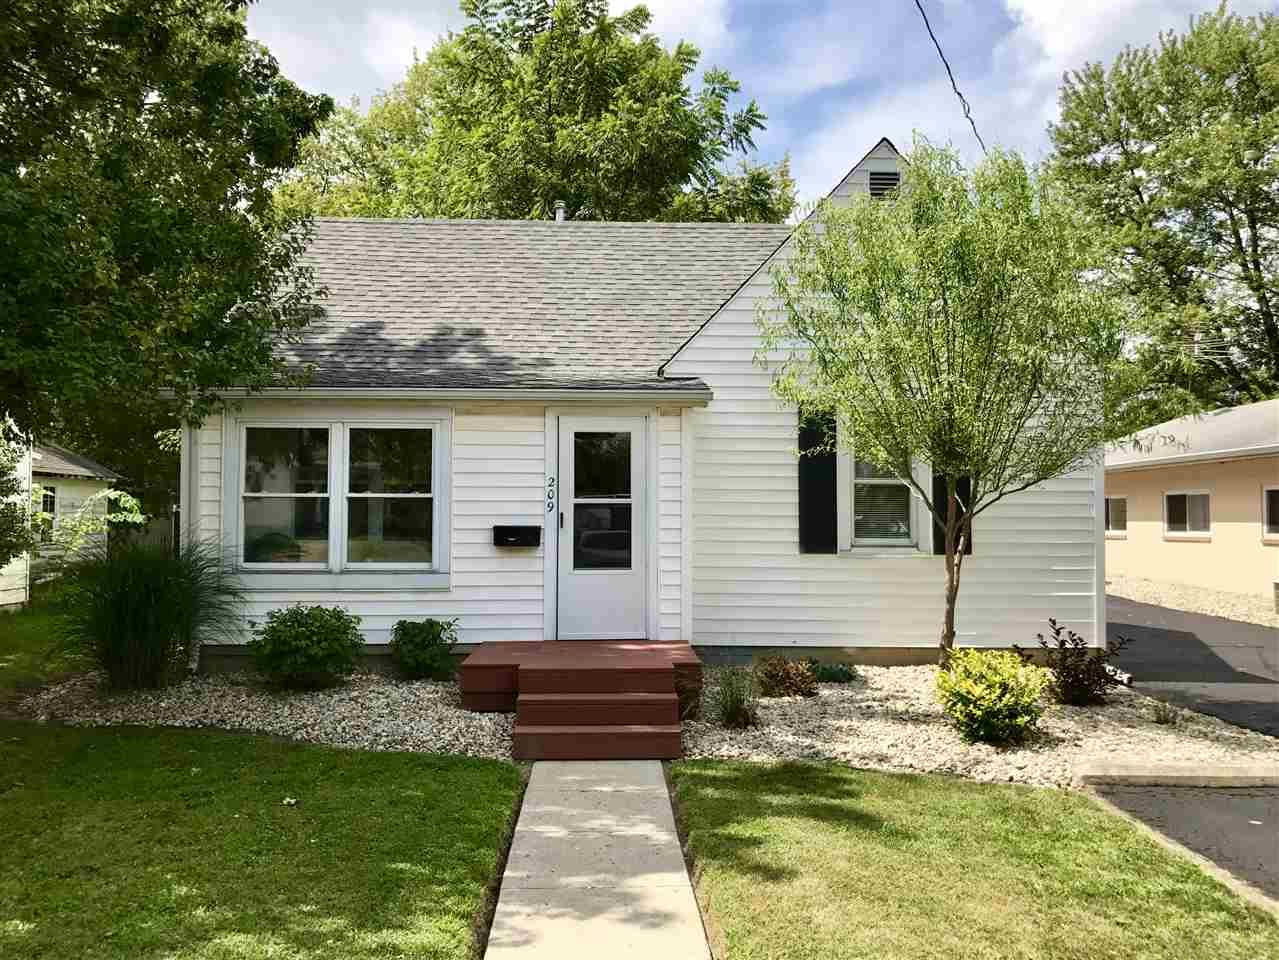 209 S 25th, New Castle, IN 47362